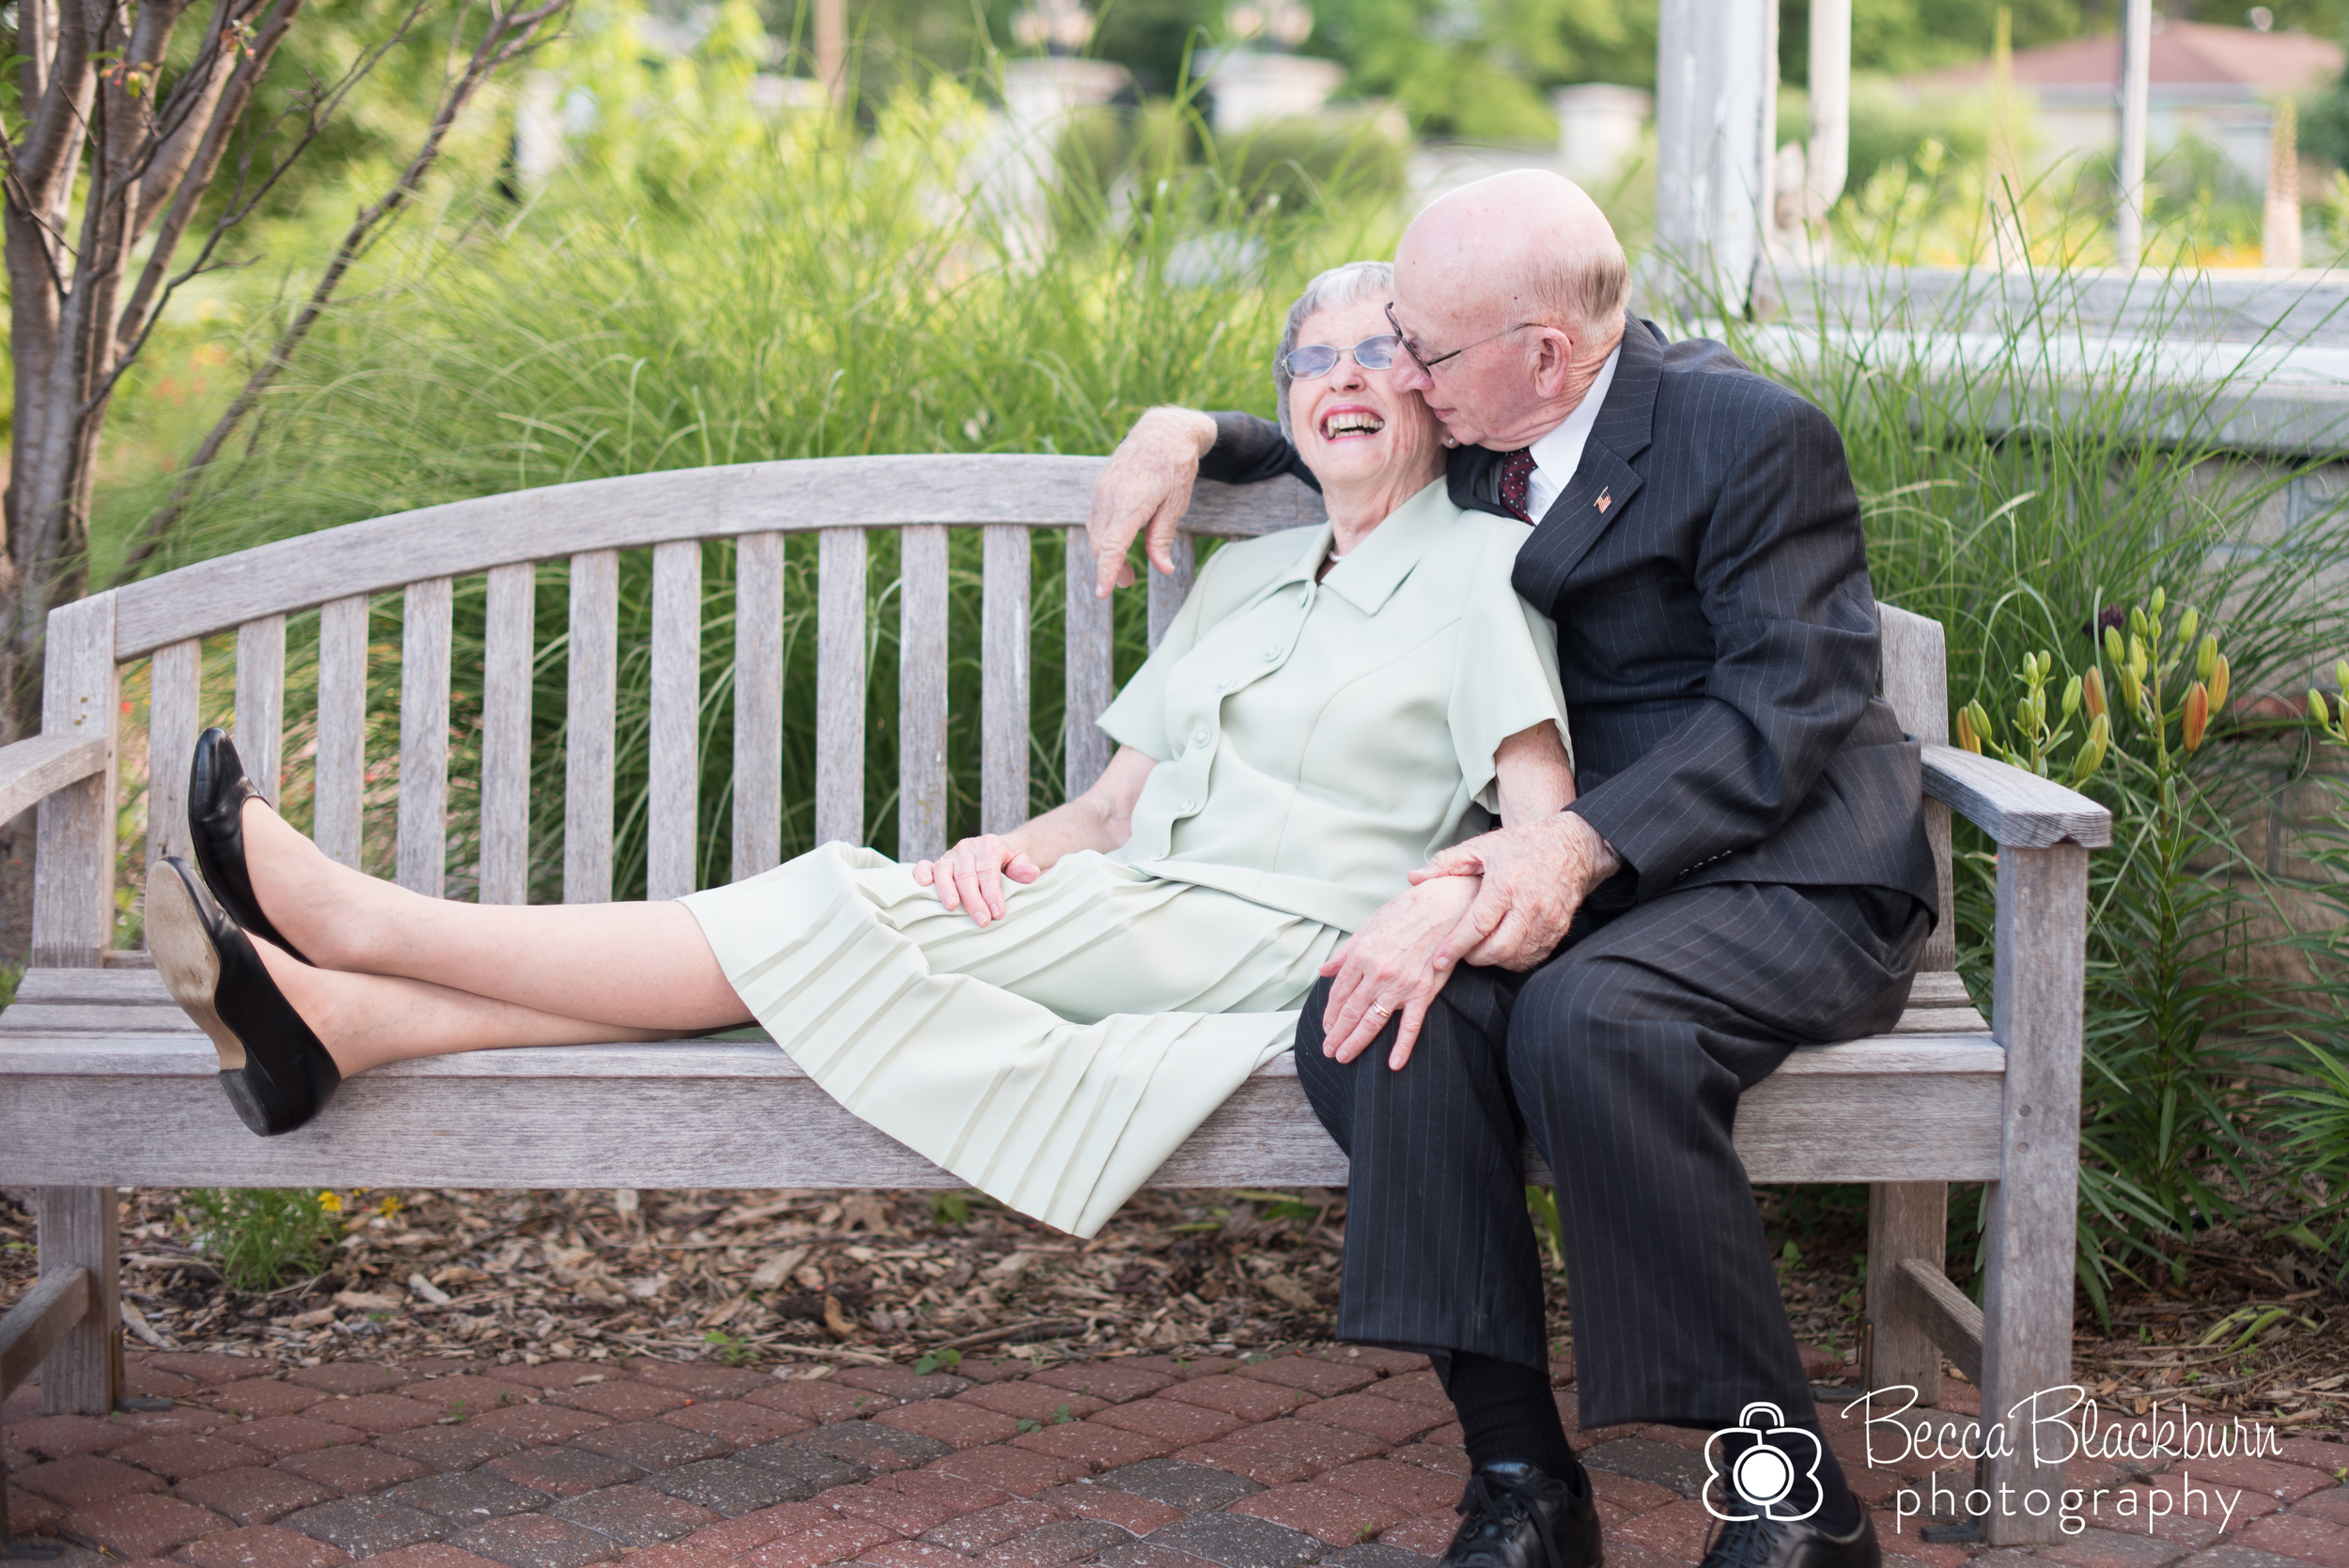 """I love the way Grandfather and Grandmother have fun together, even after 60 years of marriage. The way they laugh together and walk through life as one is inspiring as my husband and I think about what our marriage may look like years from now."" -Becca"